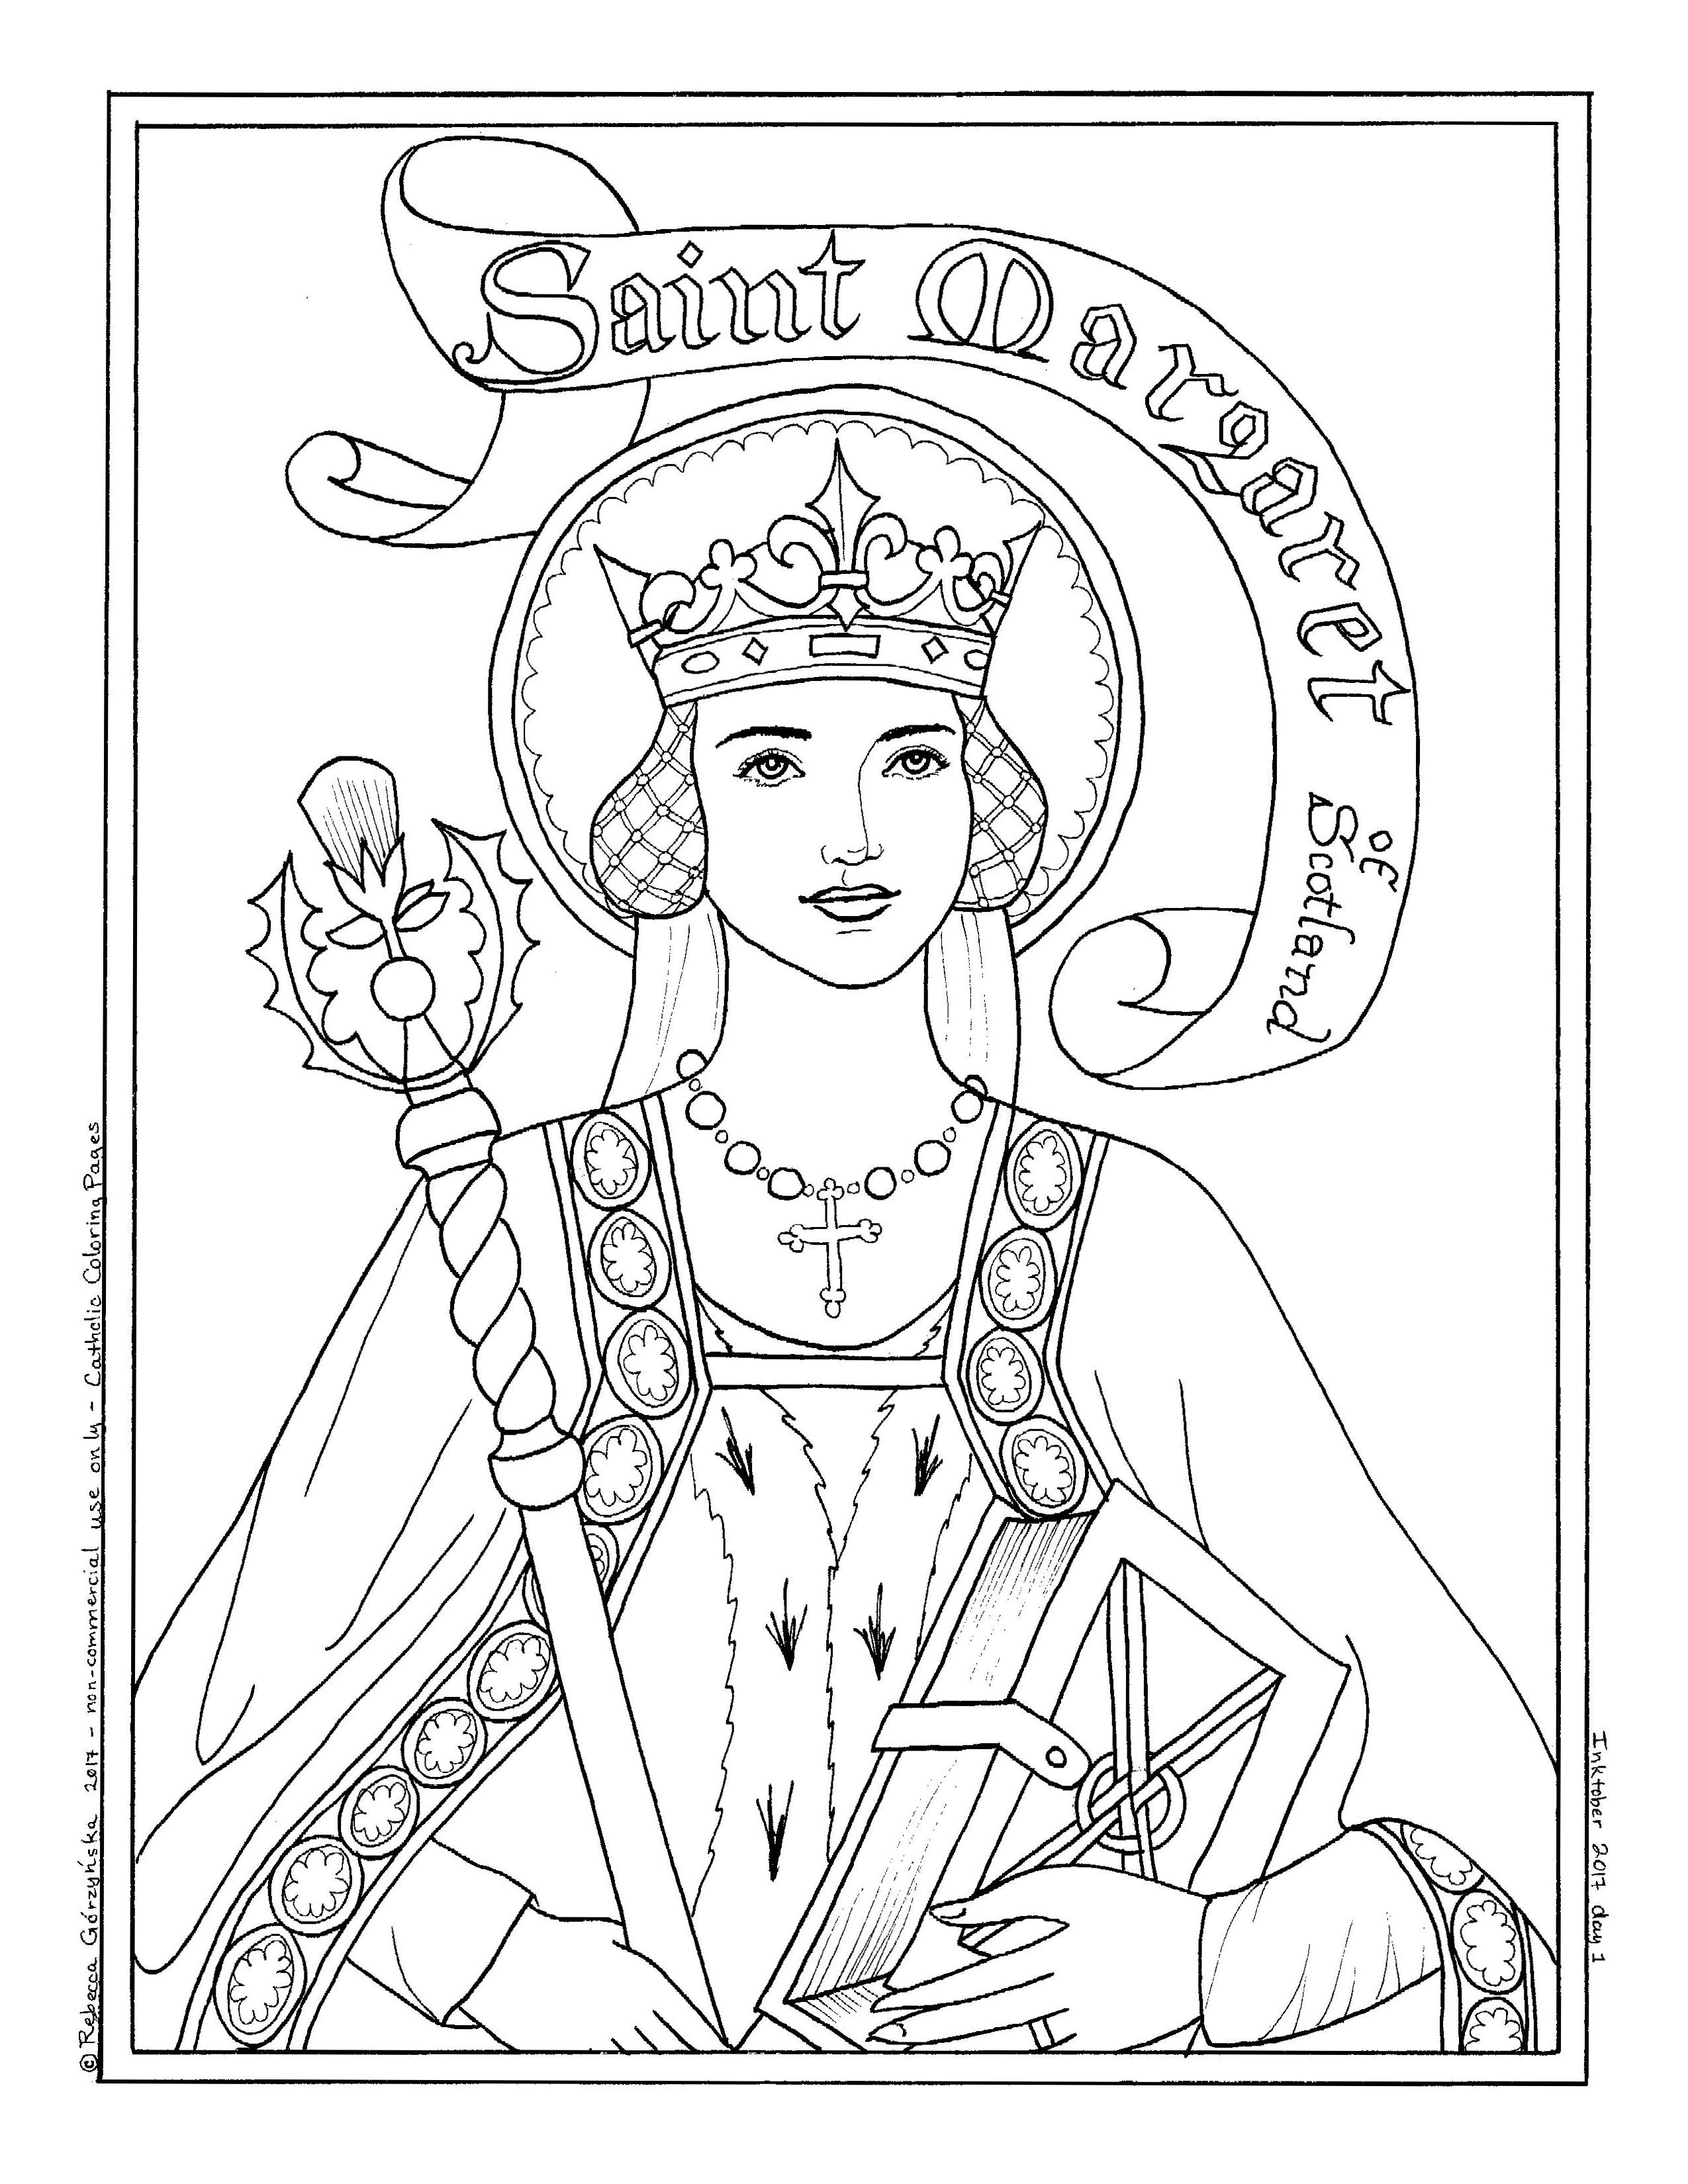 General Santa Anna Coloring Pages With Image Result For St Margaret Of Scotland Page Kids